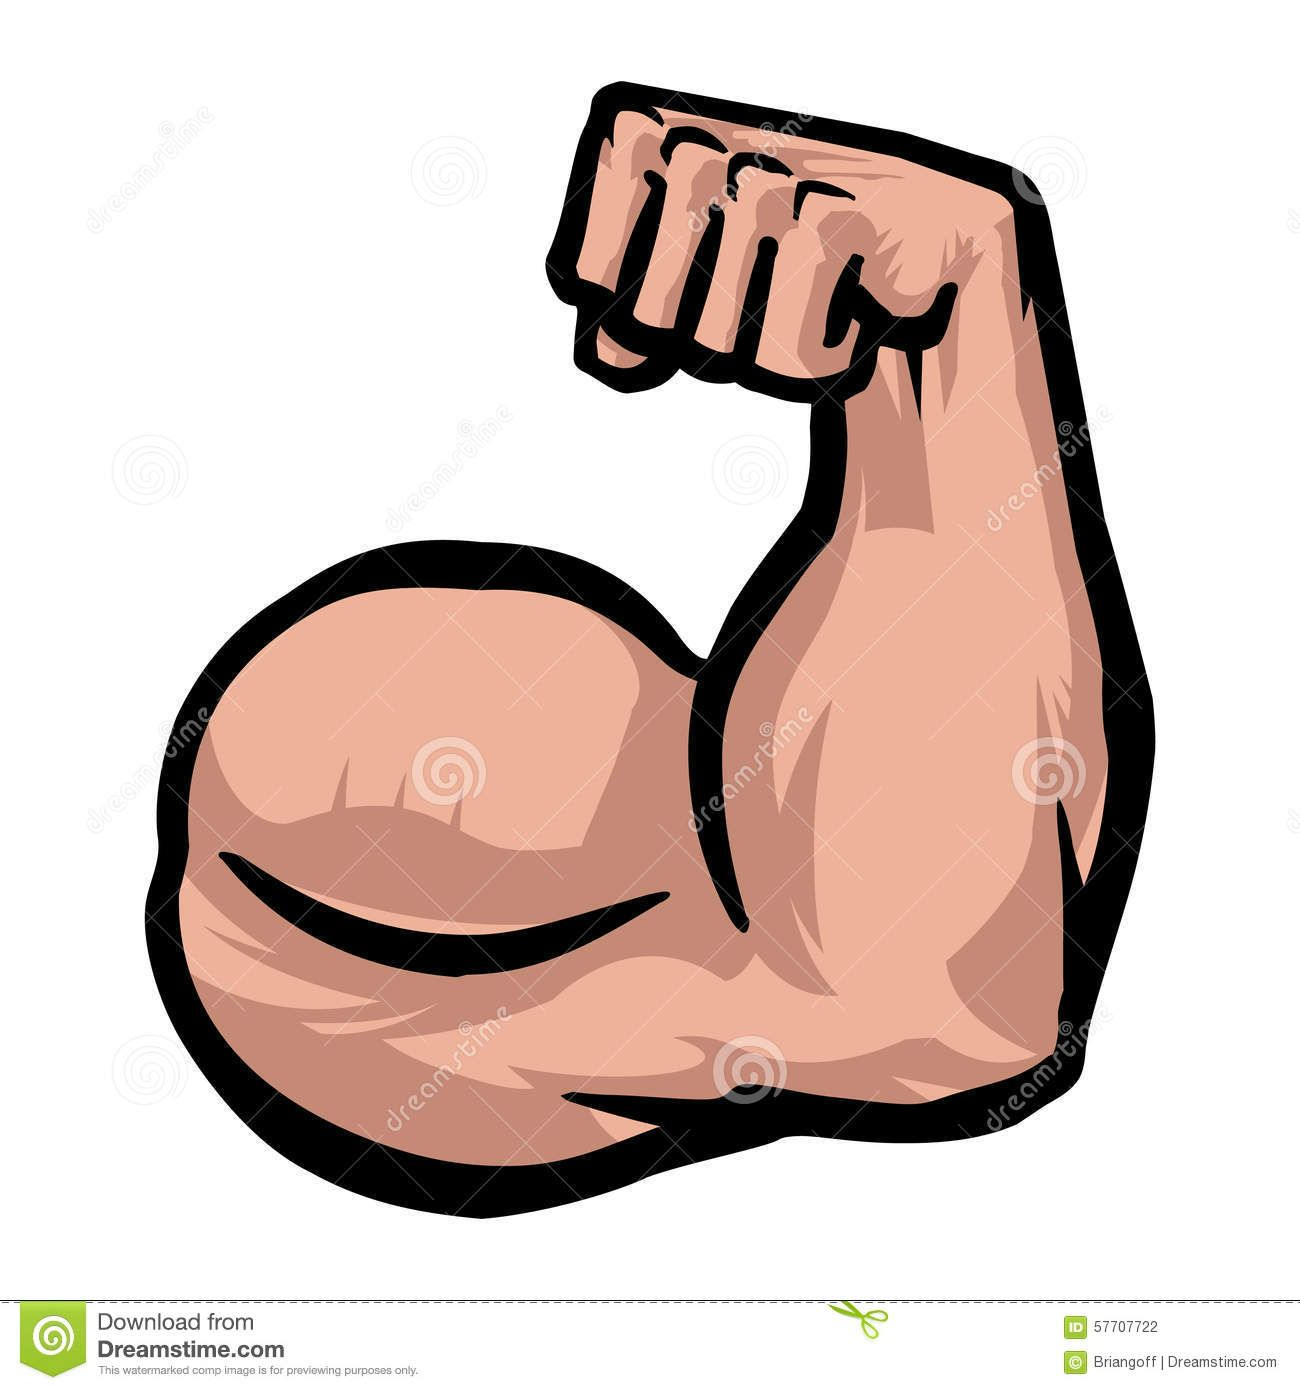 Body Builder Clipart at GetDrawings.com.